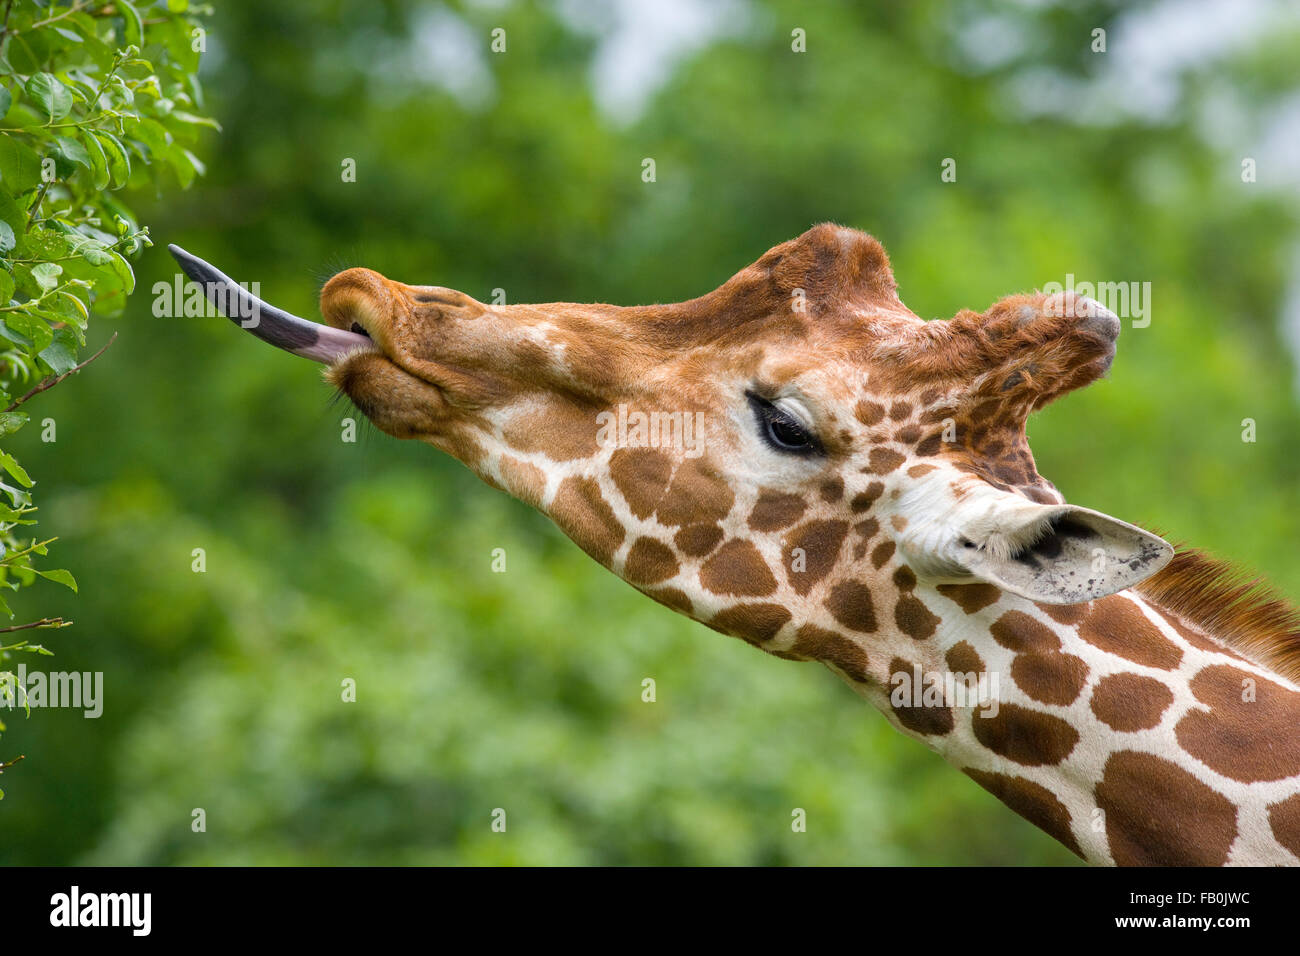 Giraffe Giraffa camelopardalis with tongue extended feeding - Stock Image